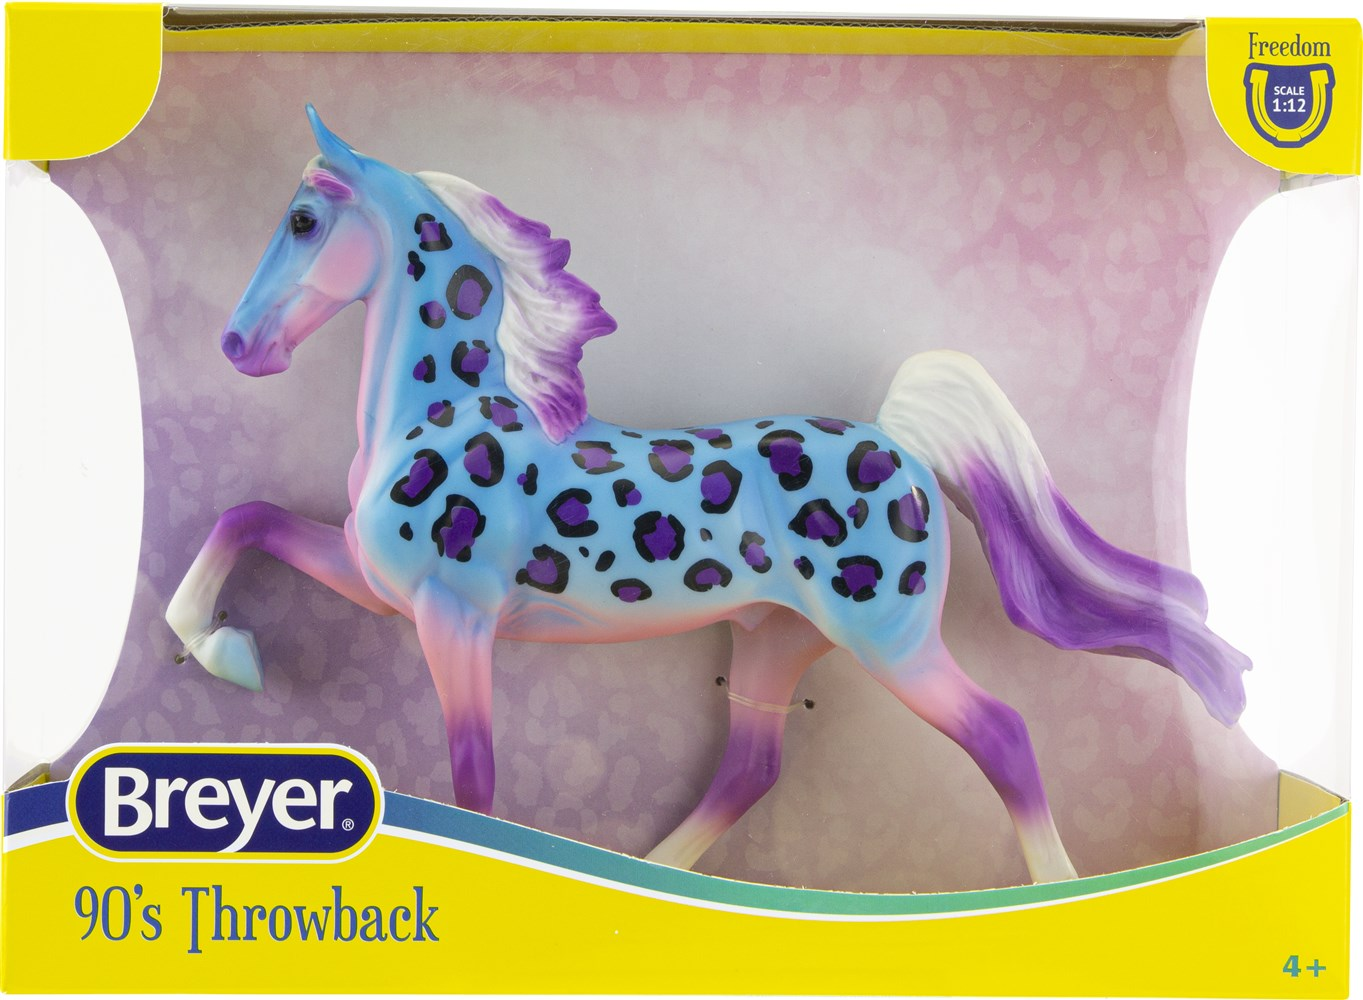 Breyer Freedom 90's Throwback